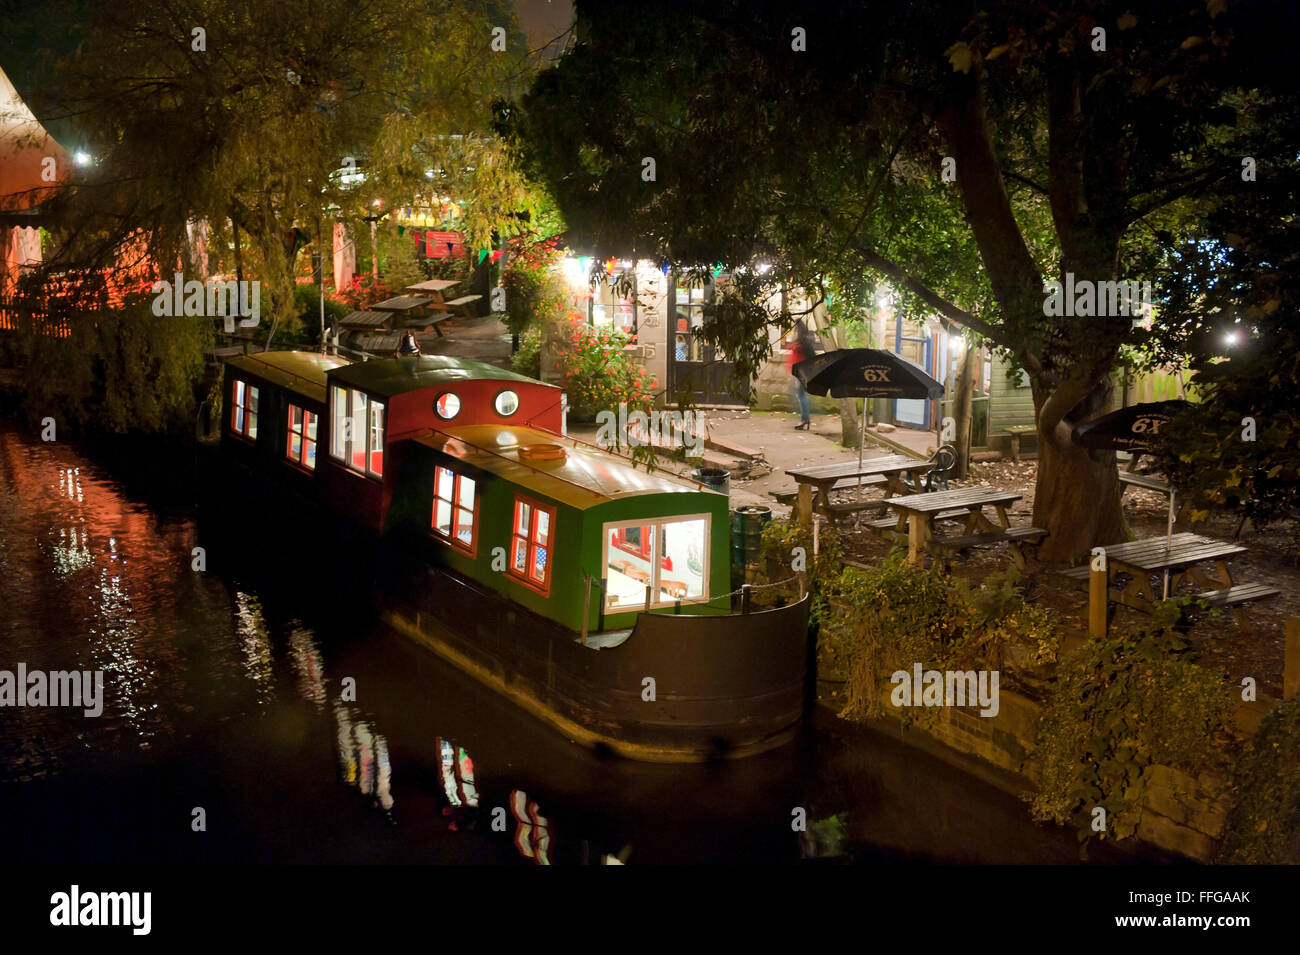 Canal boat converted to a tea room at 'The Lock Inn' Cafe,  Kennet and Avon Canal in Bradford on Avon Wiltshire - Stock Image